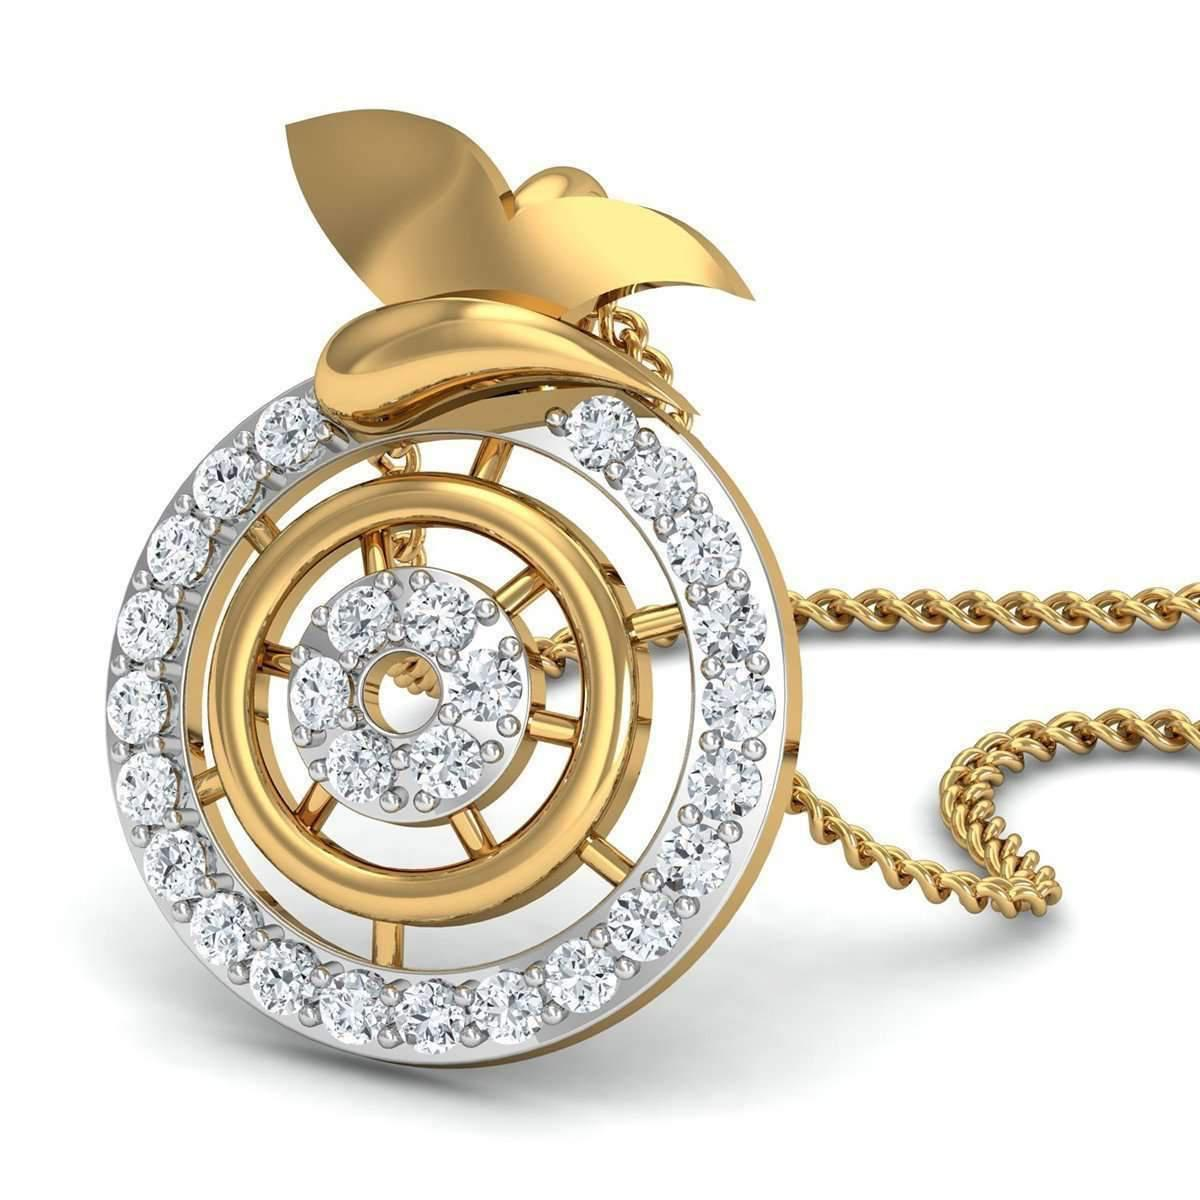 Diamoire Jewels 18kt Yellow Gold and Diamond Pendant in a Pave Setting R1wDfv